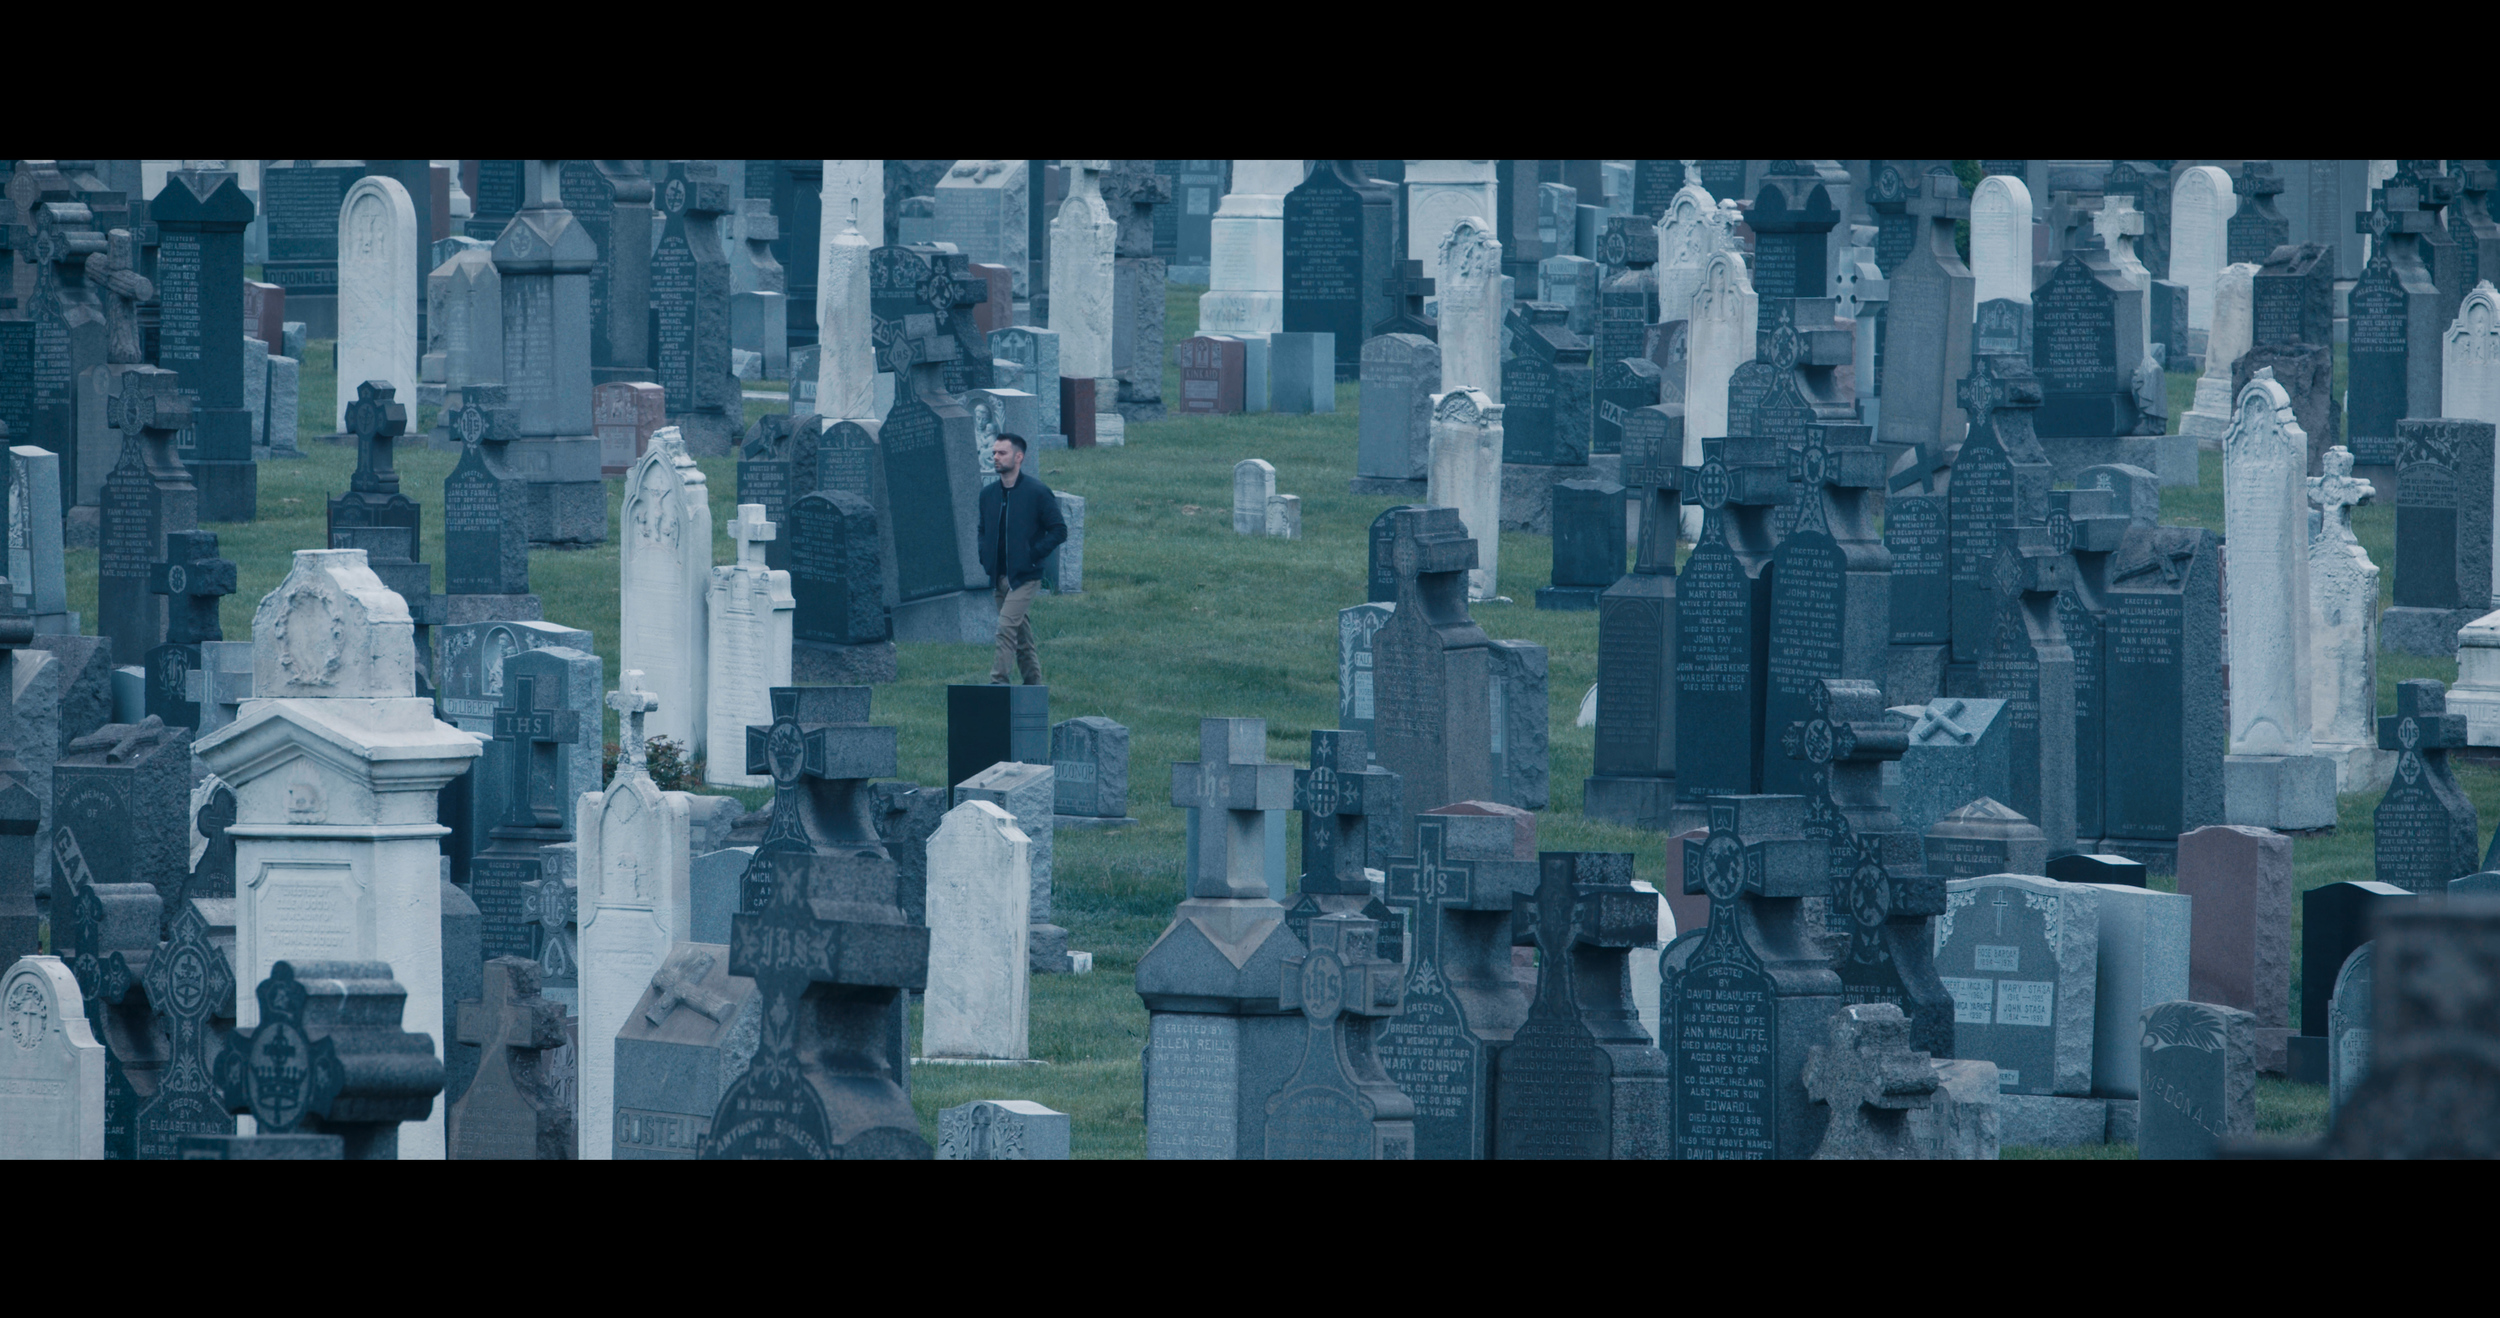 DAY 2 - Filming at a Cemetery in Queens. Sony FS7, Nikon 70-200mm f/2.8 .